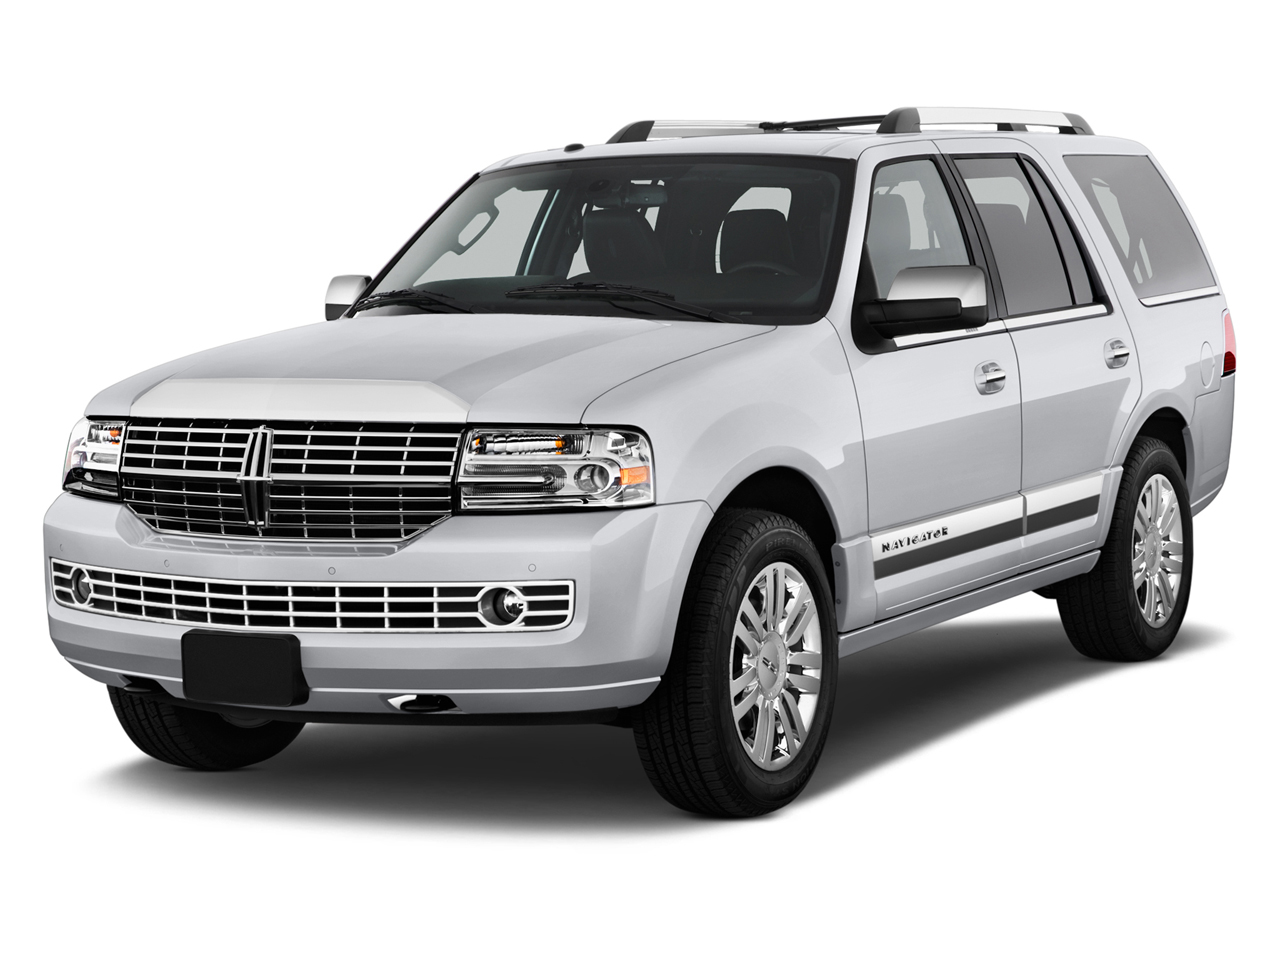 2010 lincoln navigator review ratings specs prices and photos the car connection. Black Bedroom Furniture Sets. Home Design Ideas